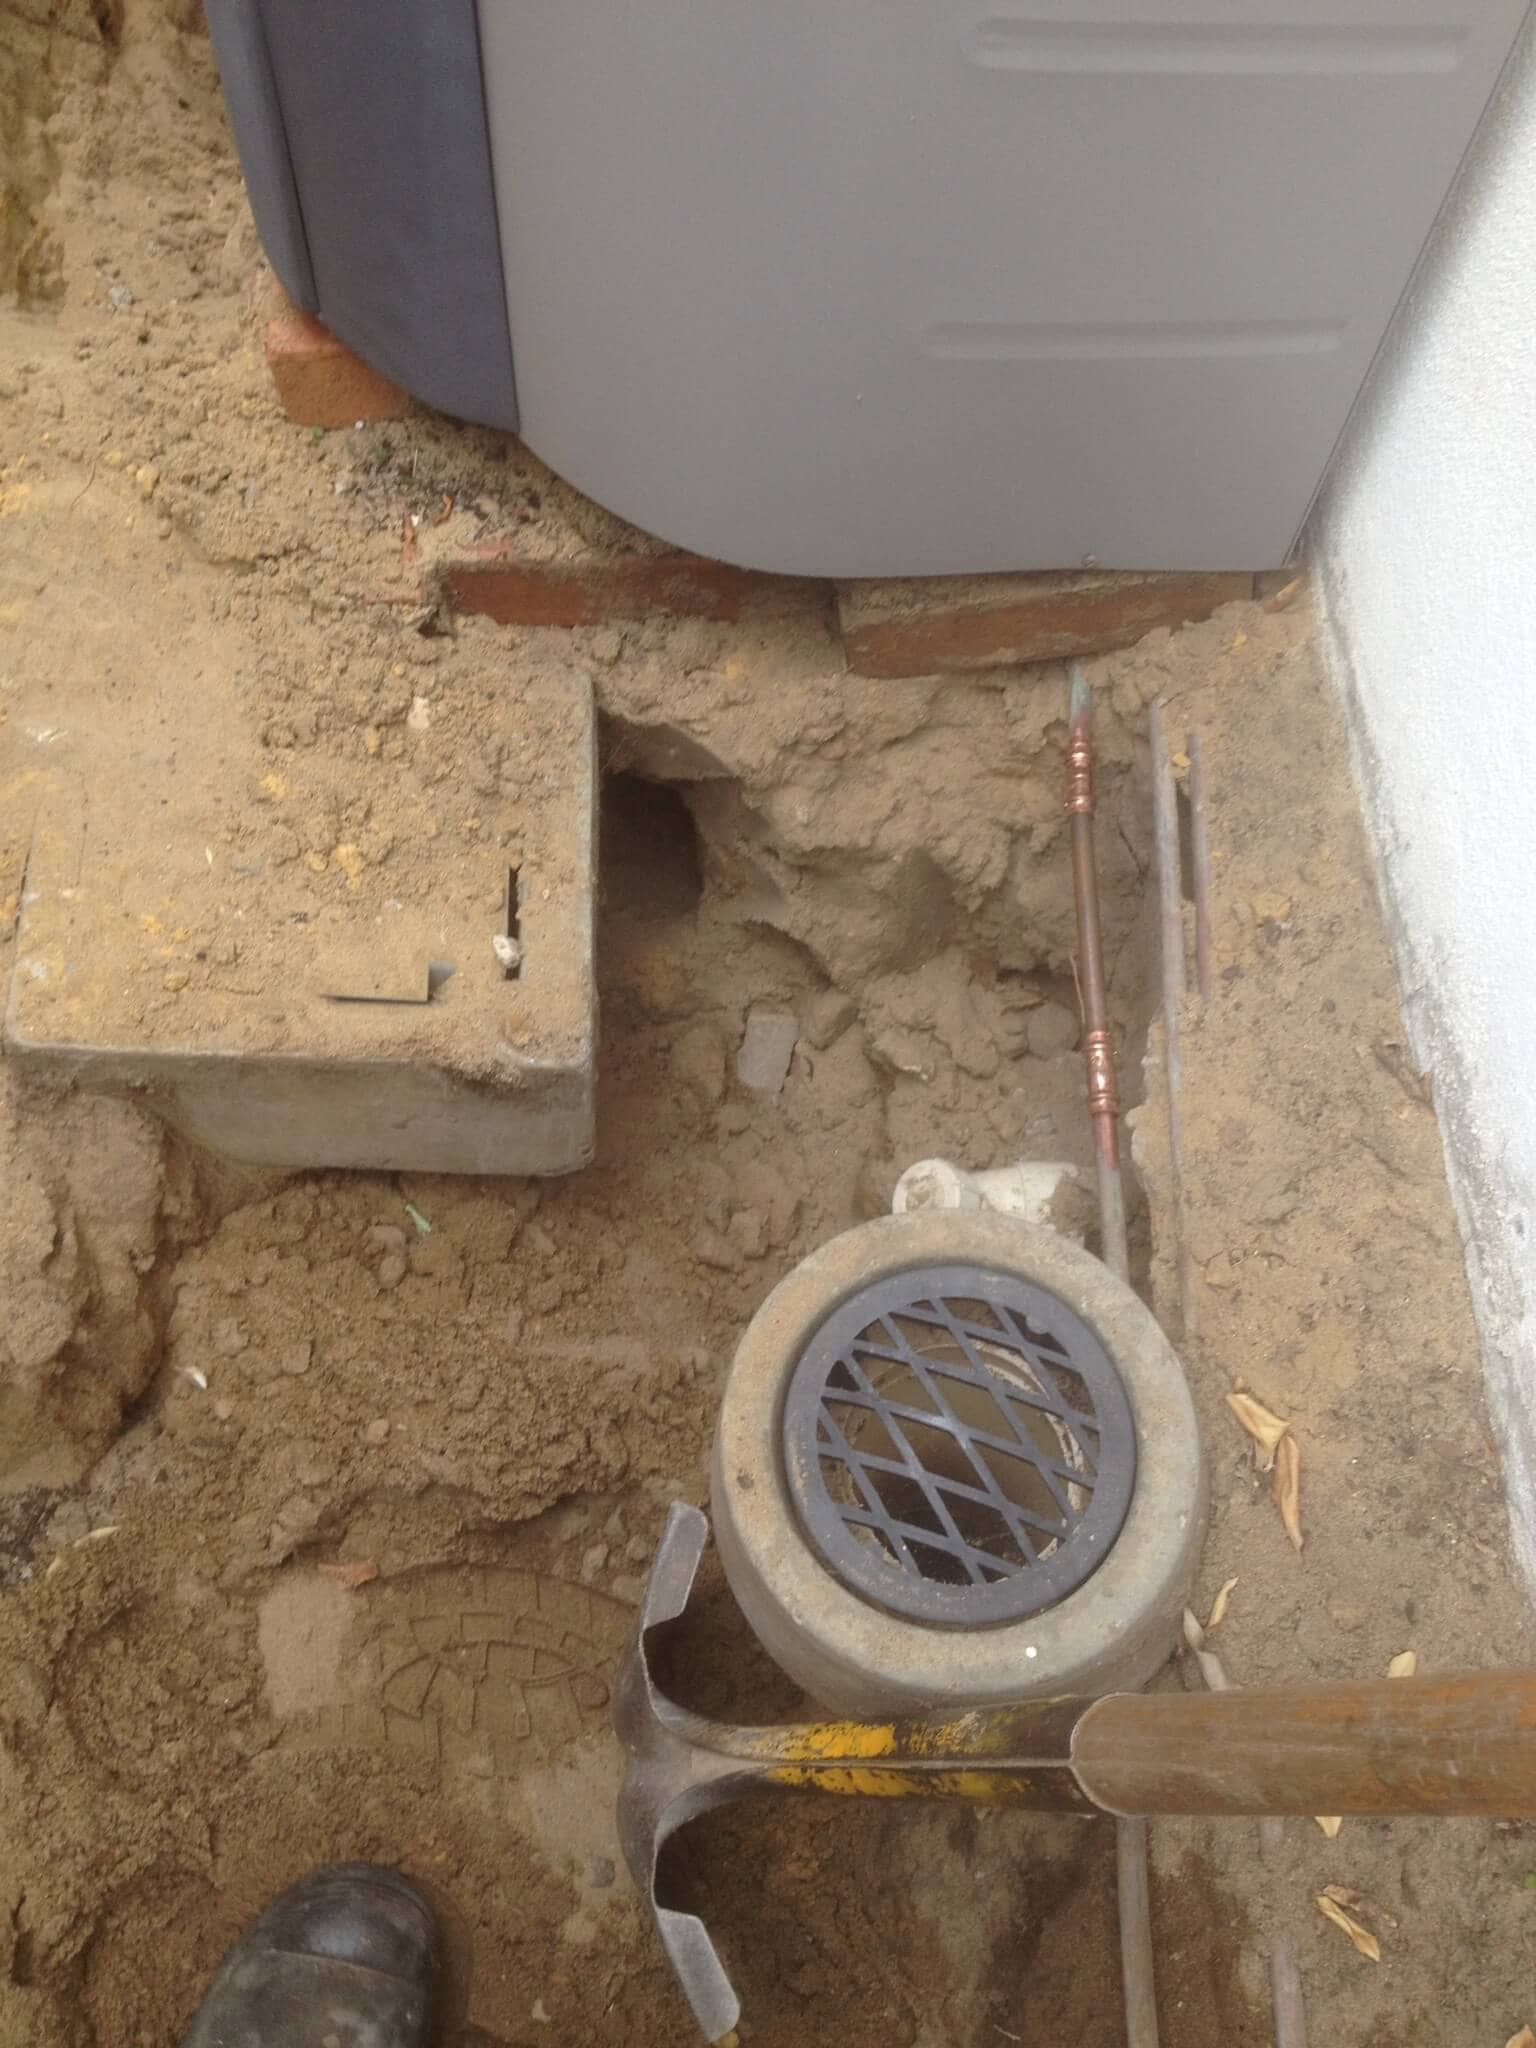 Everyday Plumbers Residential Bursts and Leak Detection Plumber - After Repair Work Images 2434-1